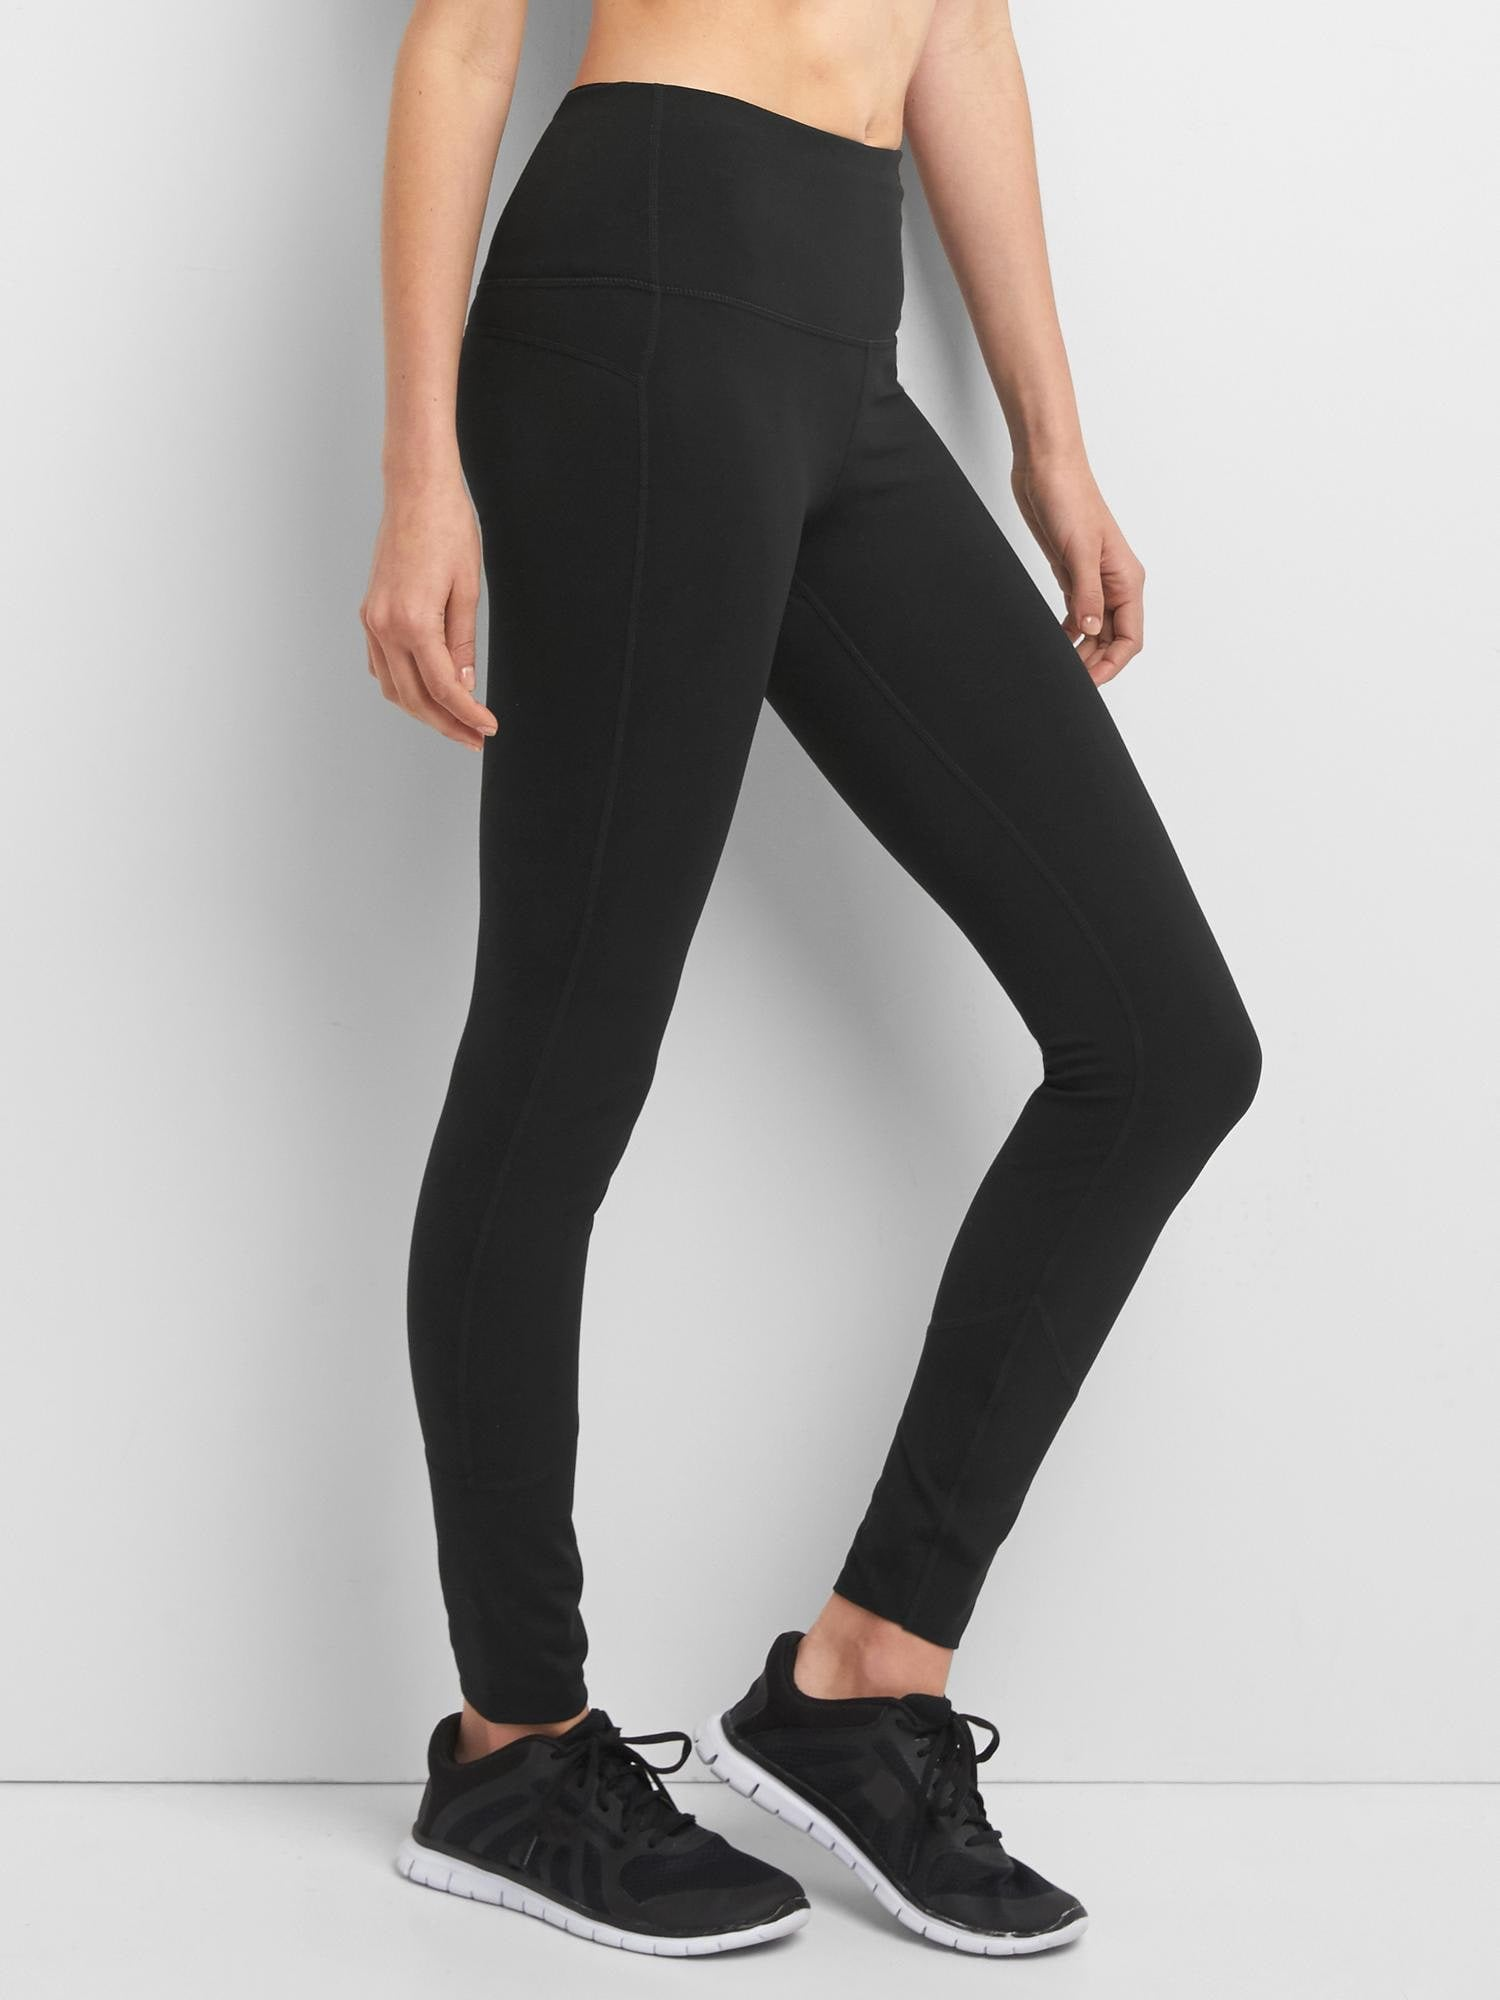 Comfortable And Never See Through Leggings I M A Shopping Editor And These Are The 8 Gap Staples I Ve Worn For Over 10 Years Popsugar Fashion Photo 5 A see through legging is something we are clearly not looking for when we are looking for comfort. never see through leggings